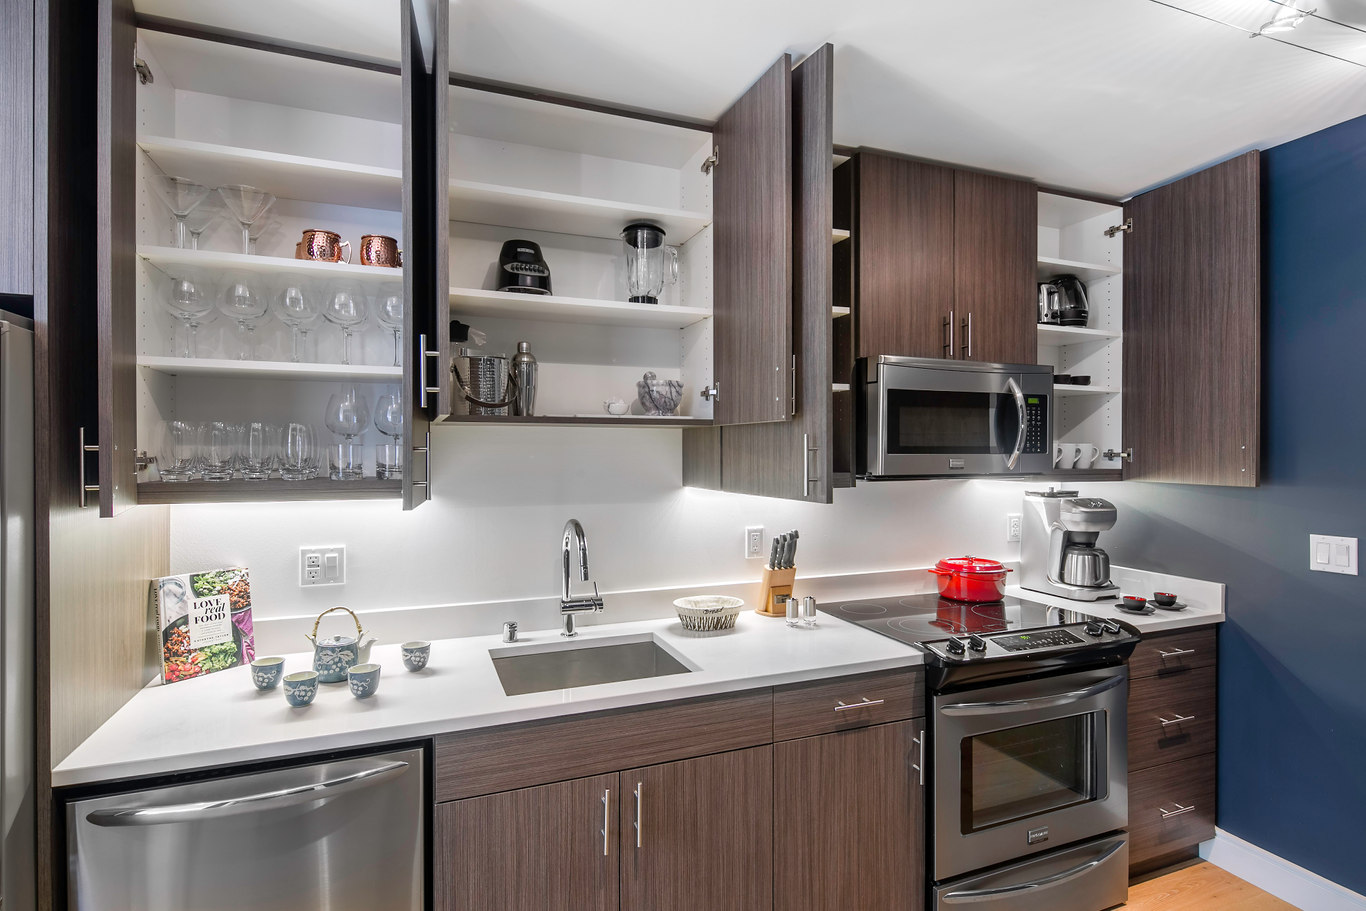 Kitchen at Ritch Street Apartments